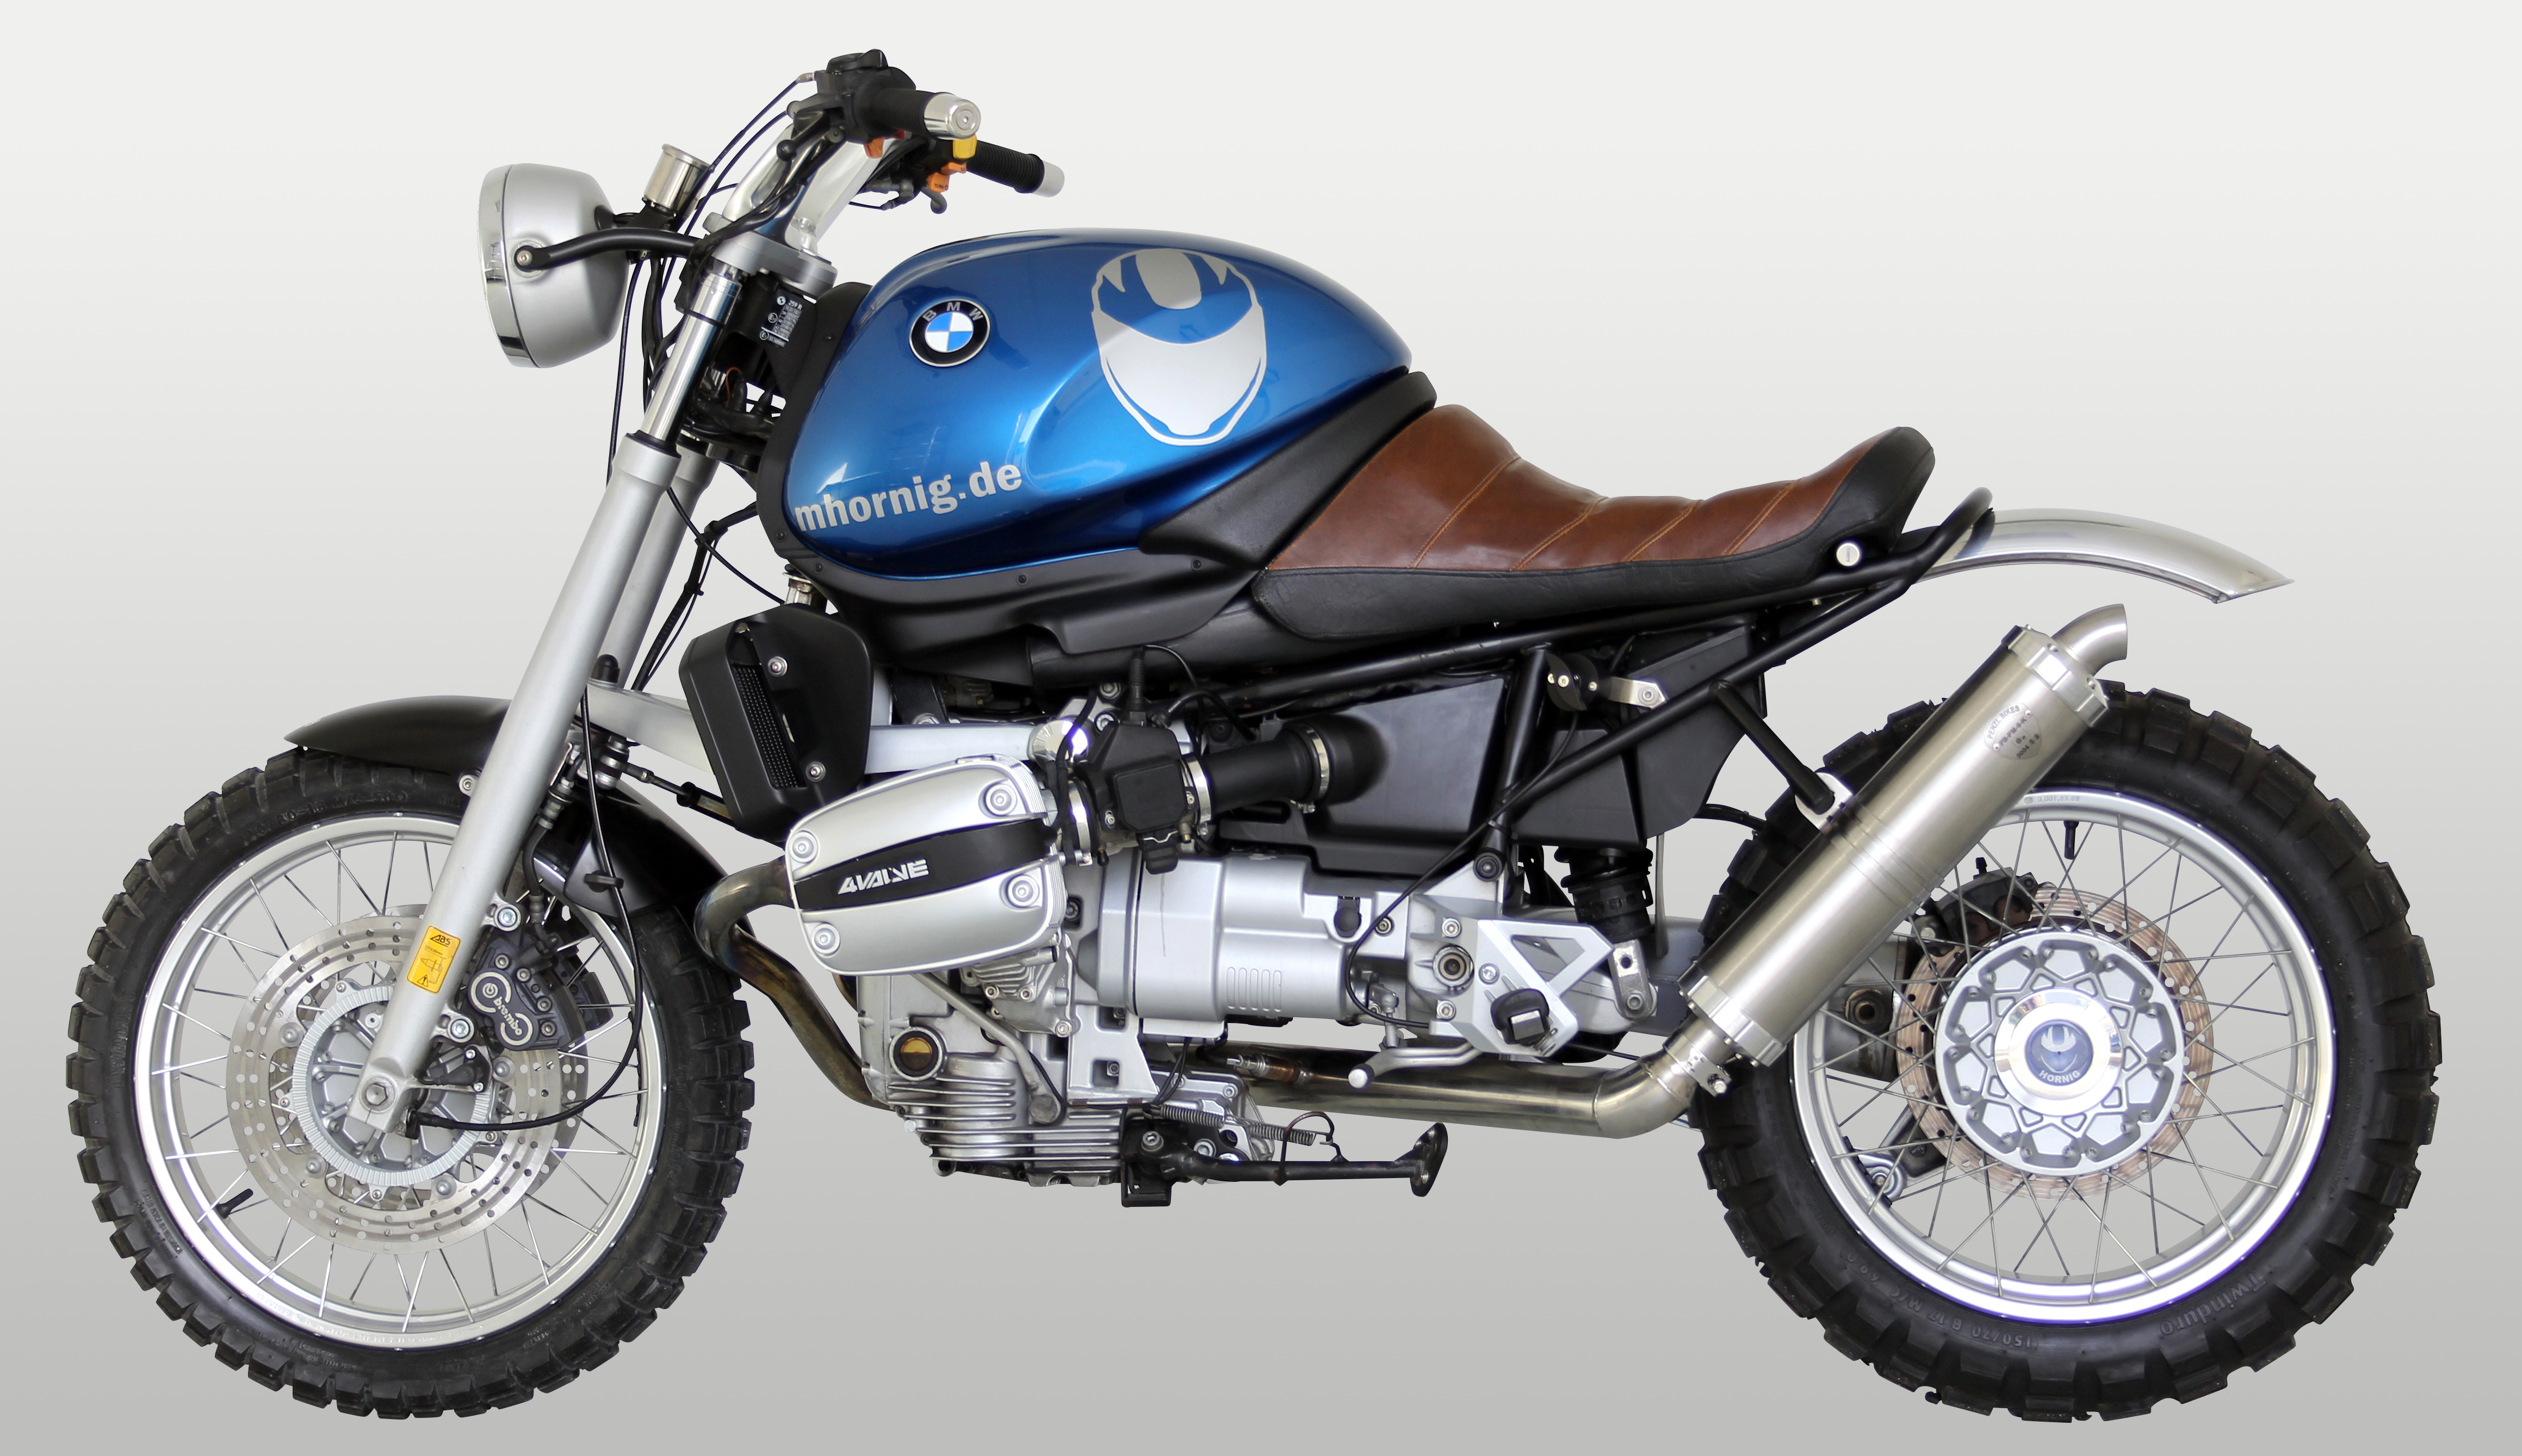 BMW R1100RS 1996 images #9914